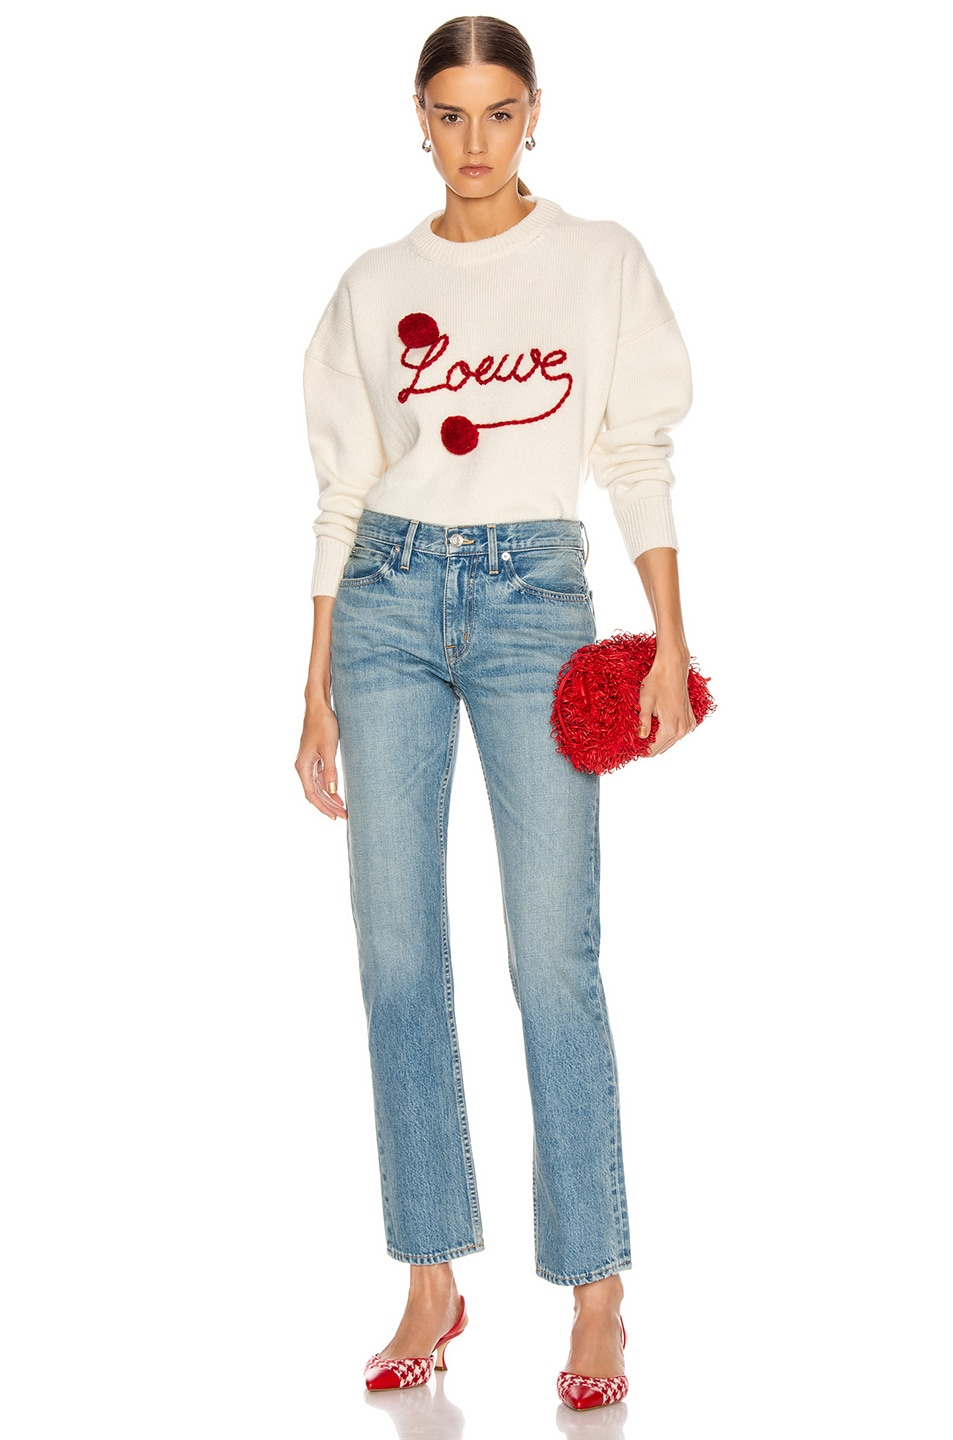 Image 4 of Loewe Pompom Loewe Sweater in White & Red